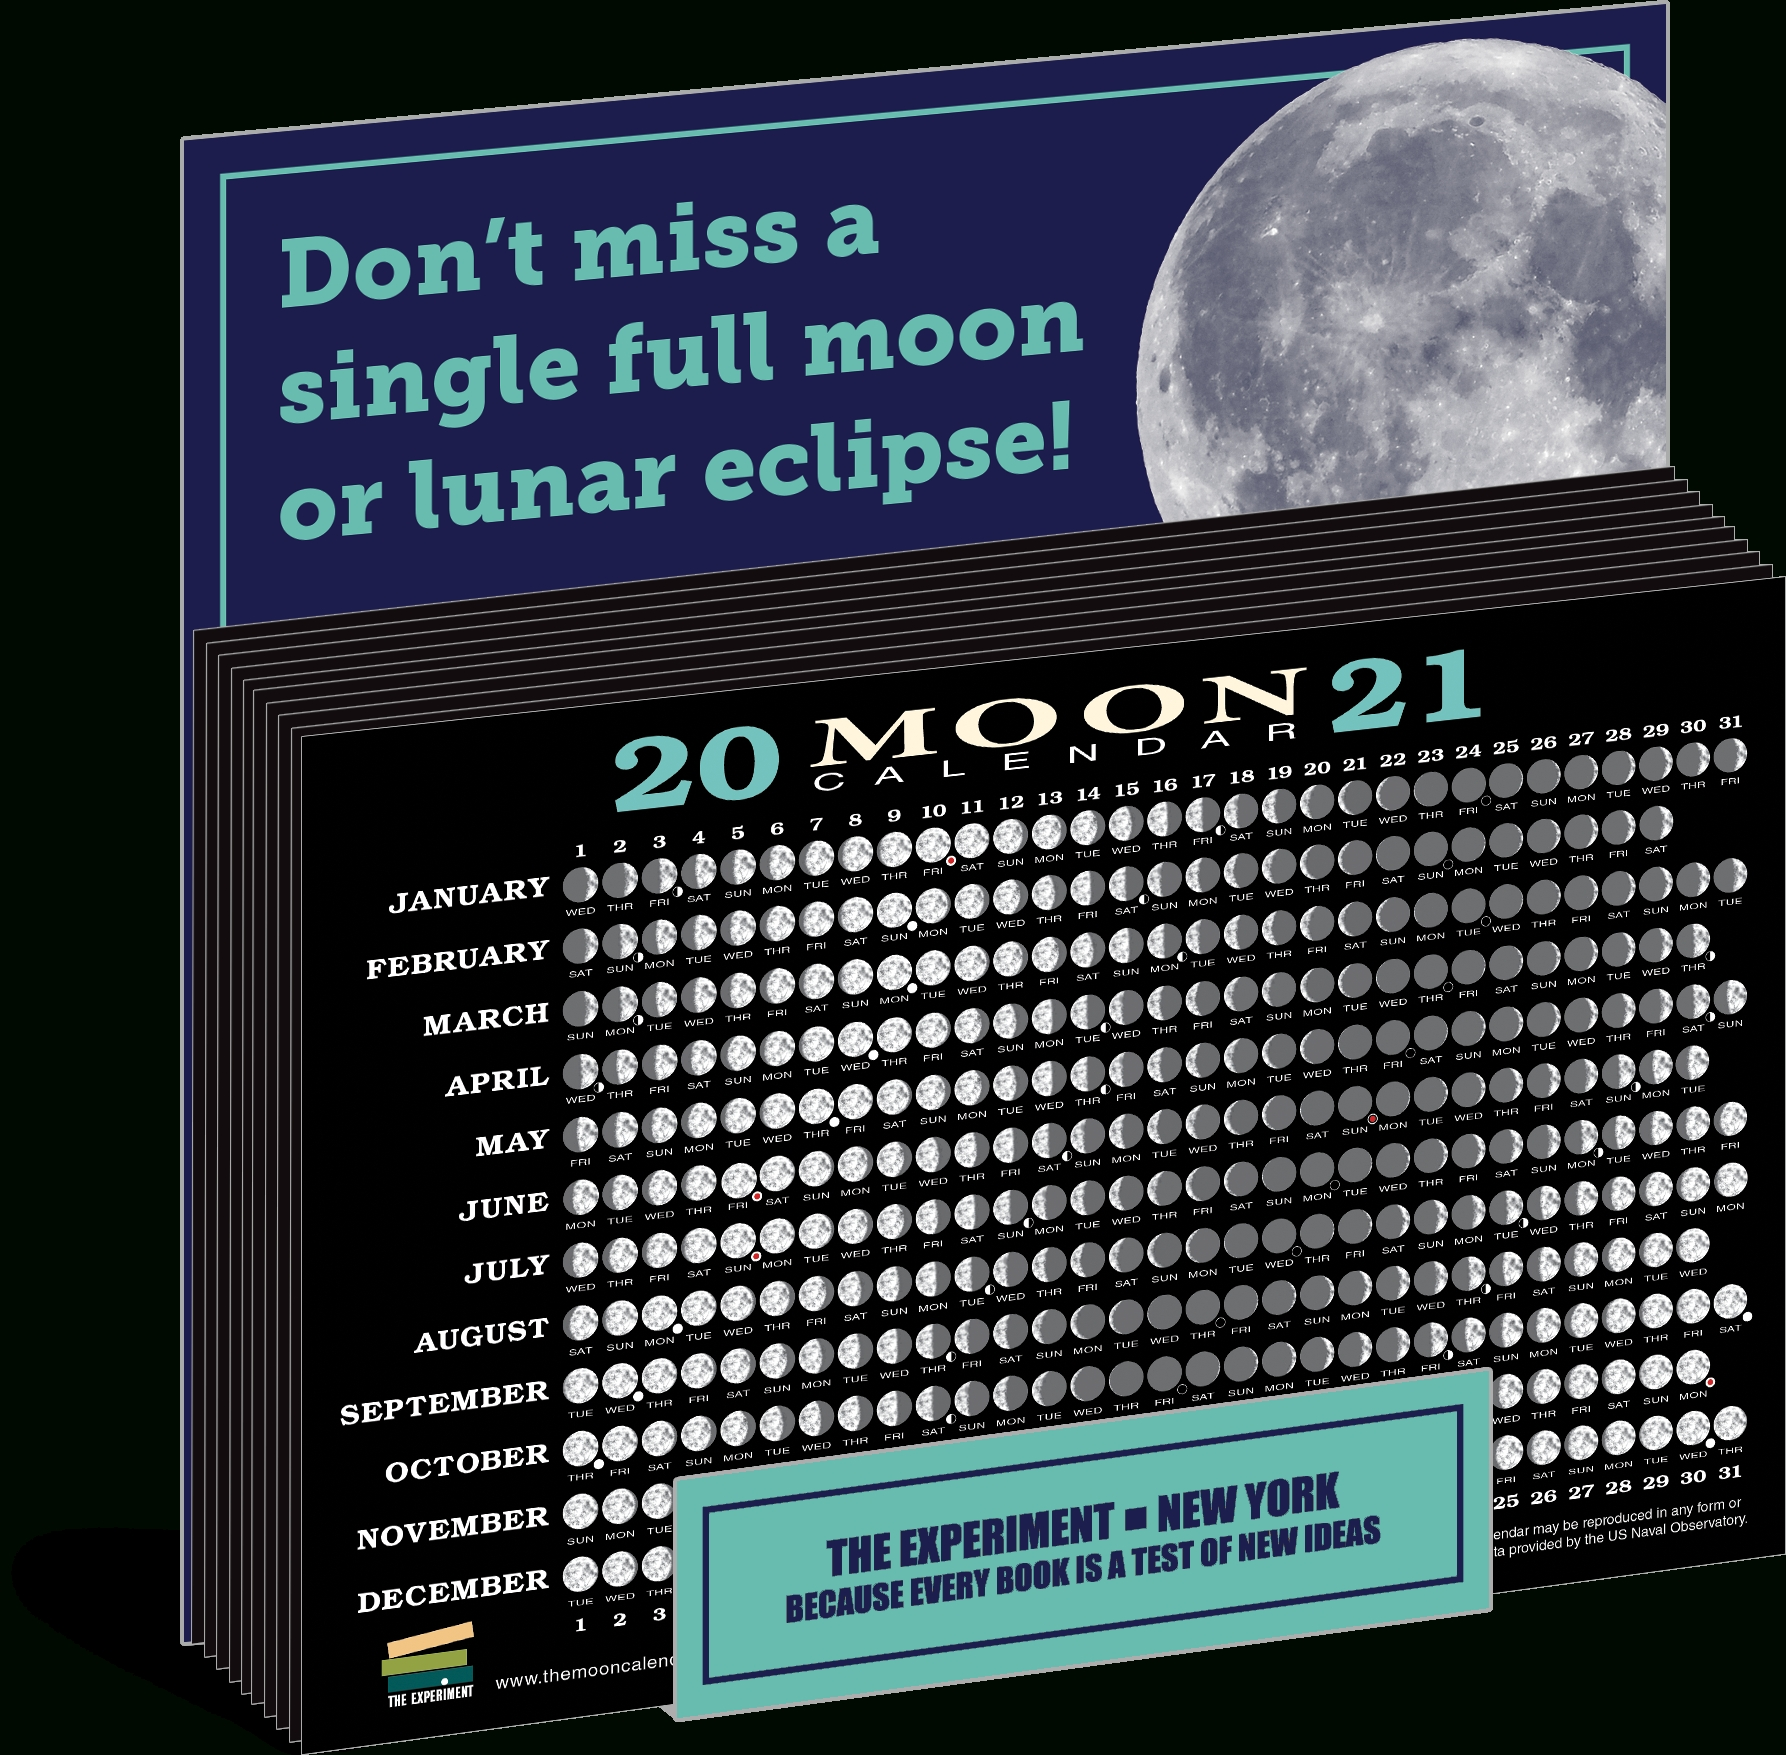 Take Full Moon August 2021 Images